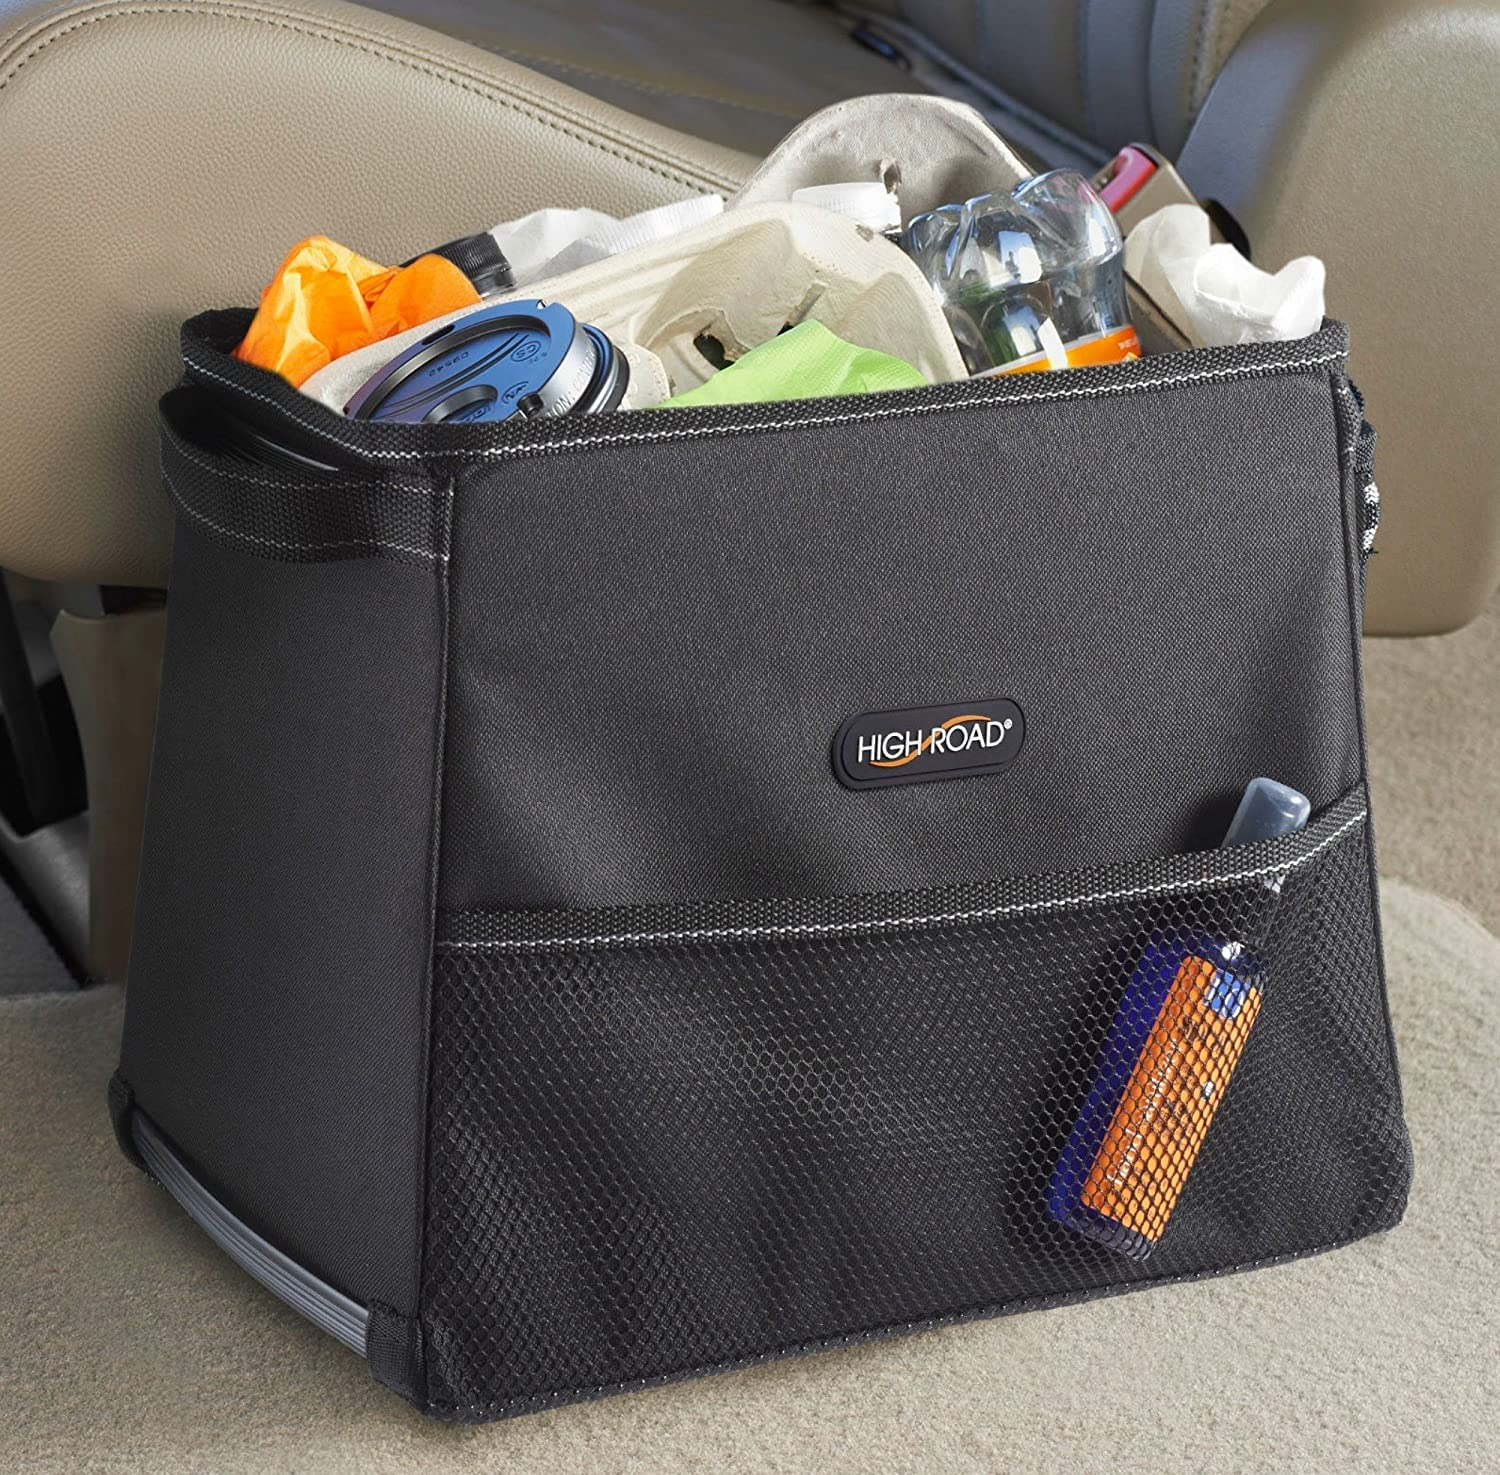 High Road StableMate Large Car Trash Can with Lid and Leakproof Lining High Road Organizers HR-TS-1006